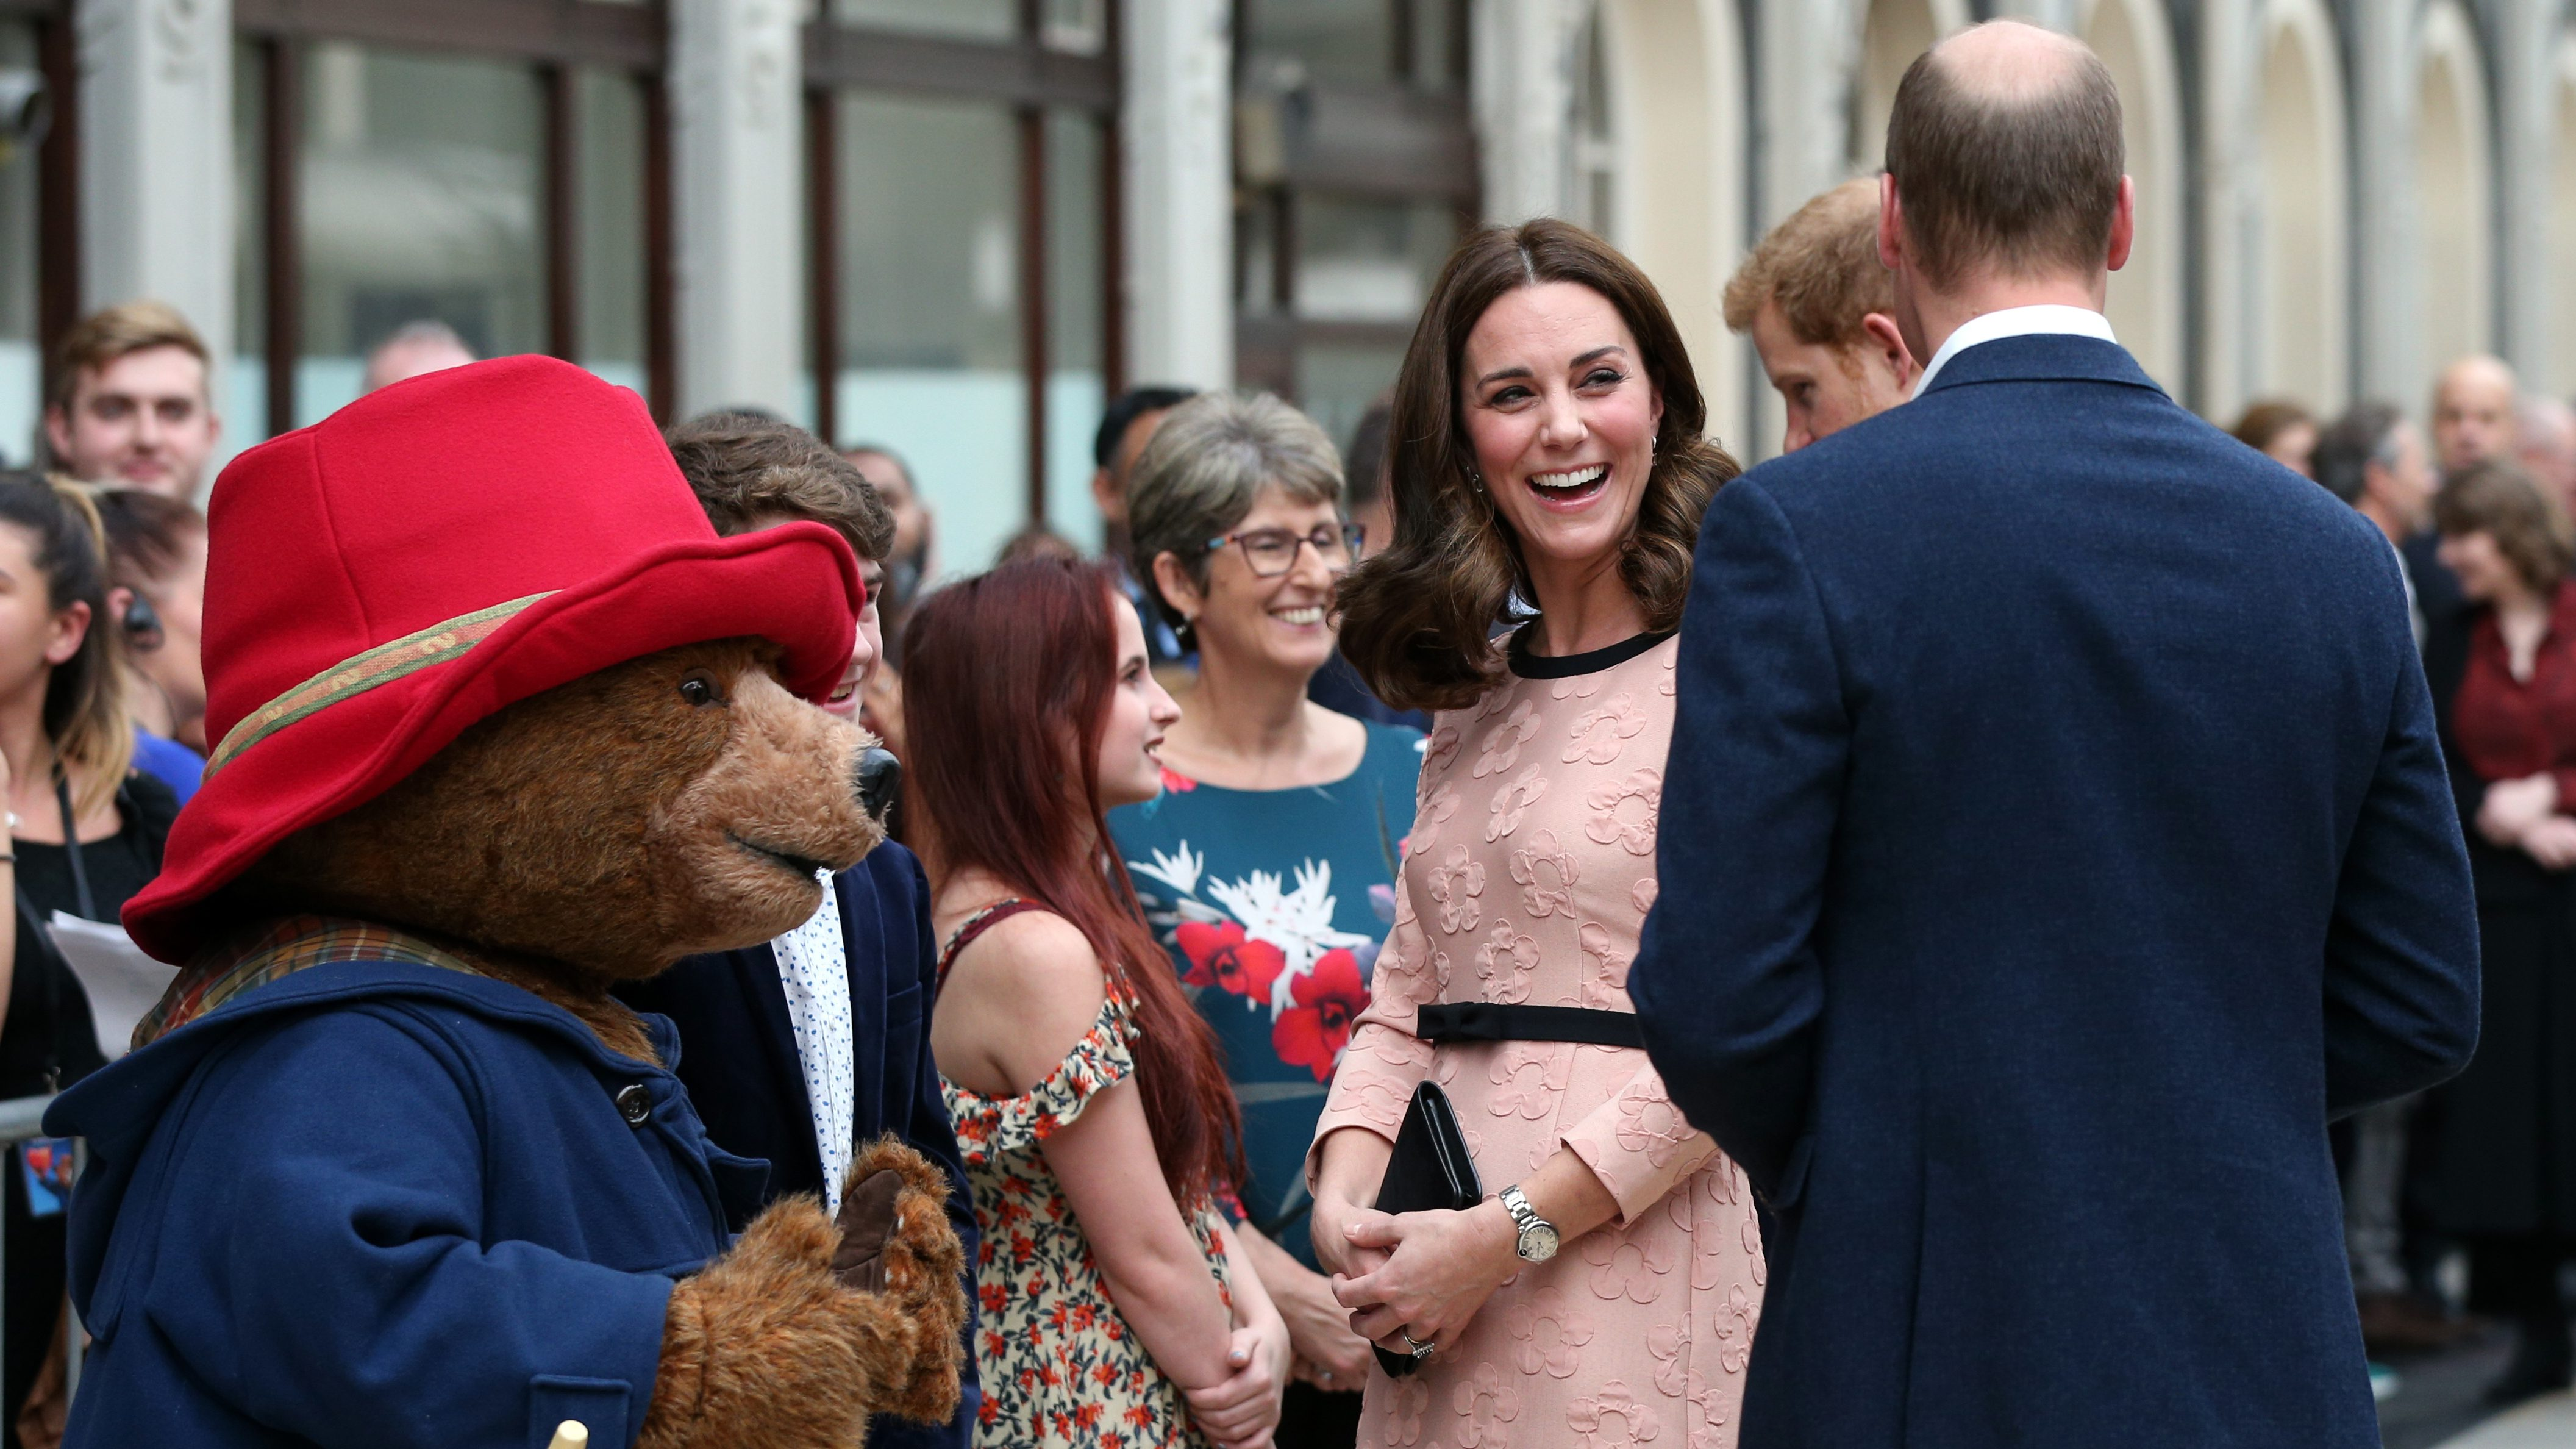 Toy story 2 lost its rotten tomatoes record to paddington 2 quartz britains prince william back to camera kate duchess of cambridge and prince harry ccuart Gallery